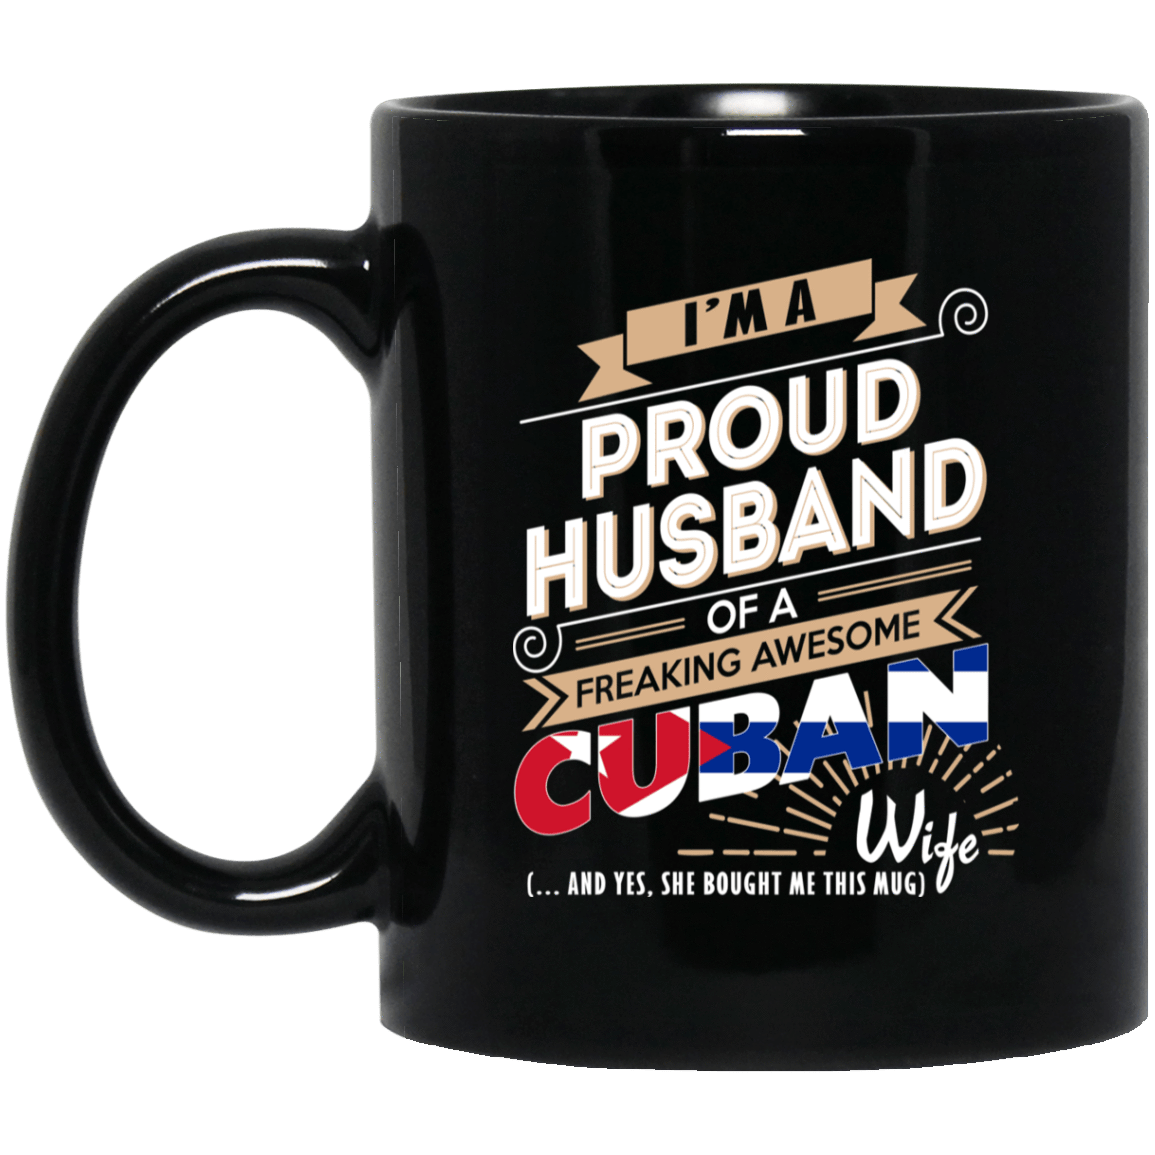 Proud Husband Of A Freaking Awesome Cuban Wife Mug 1065-10181-72136597-49307 - Tee Ript